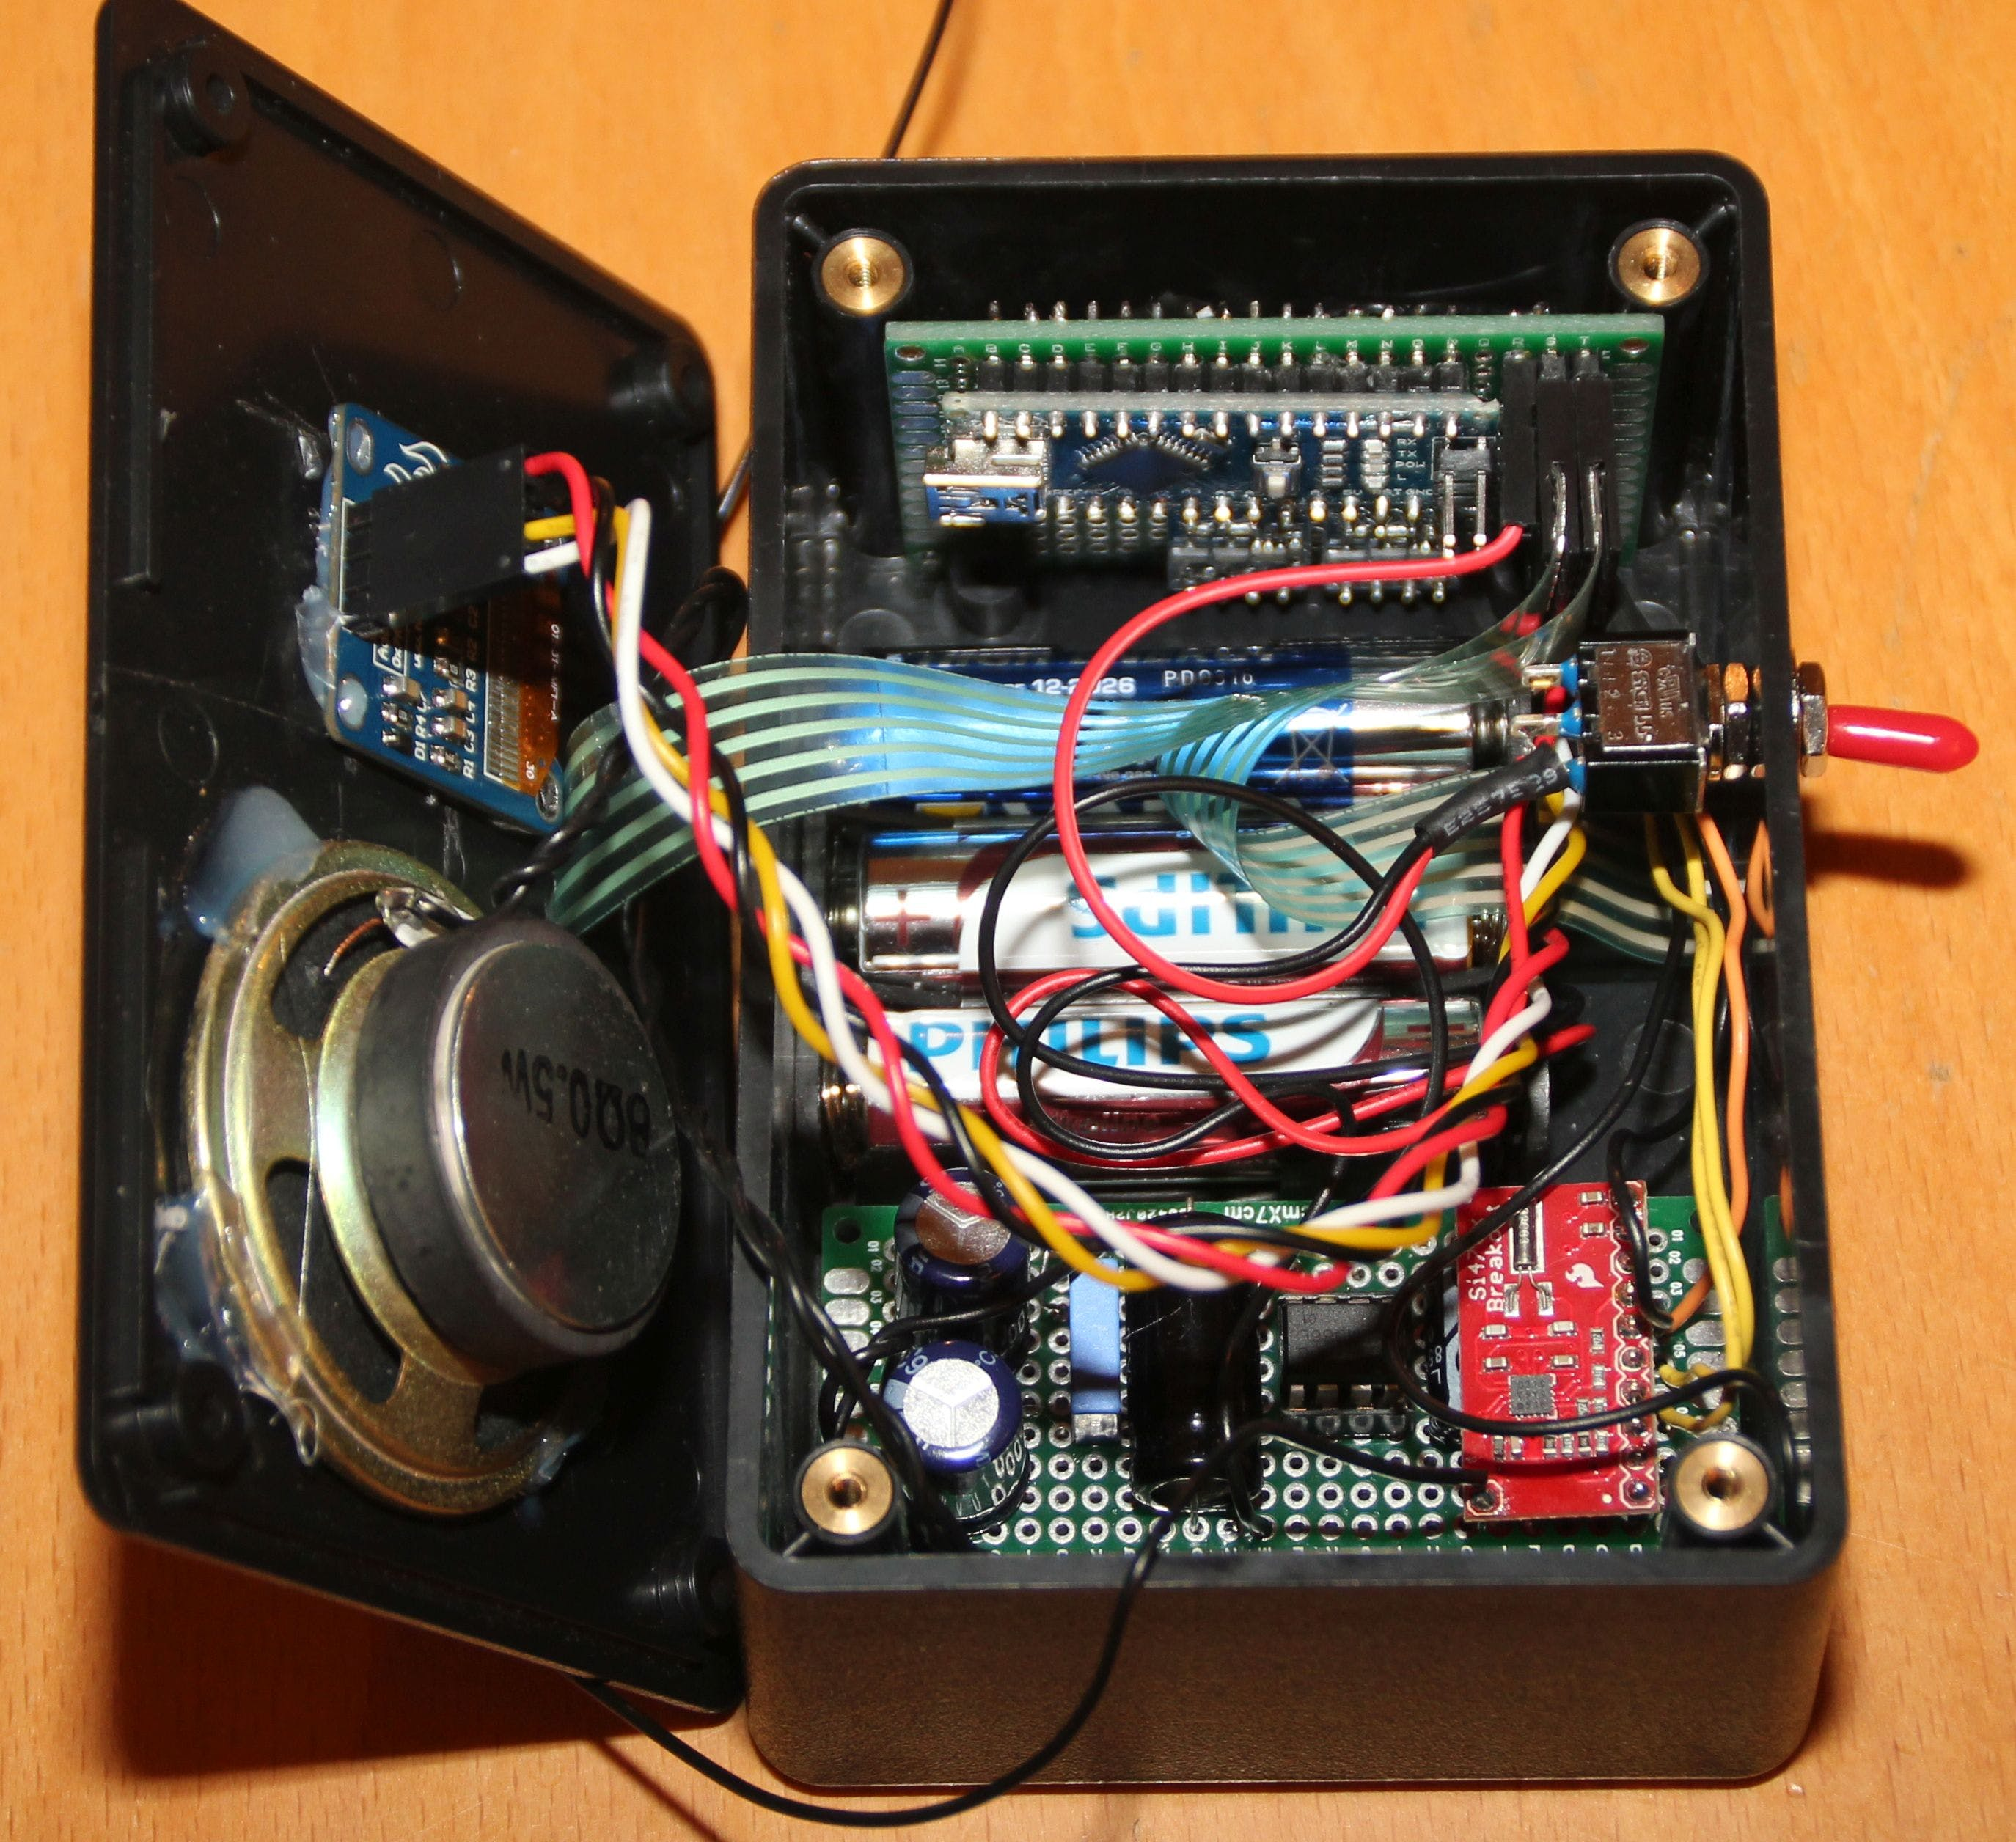 Radio enclosure opened